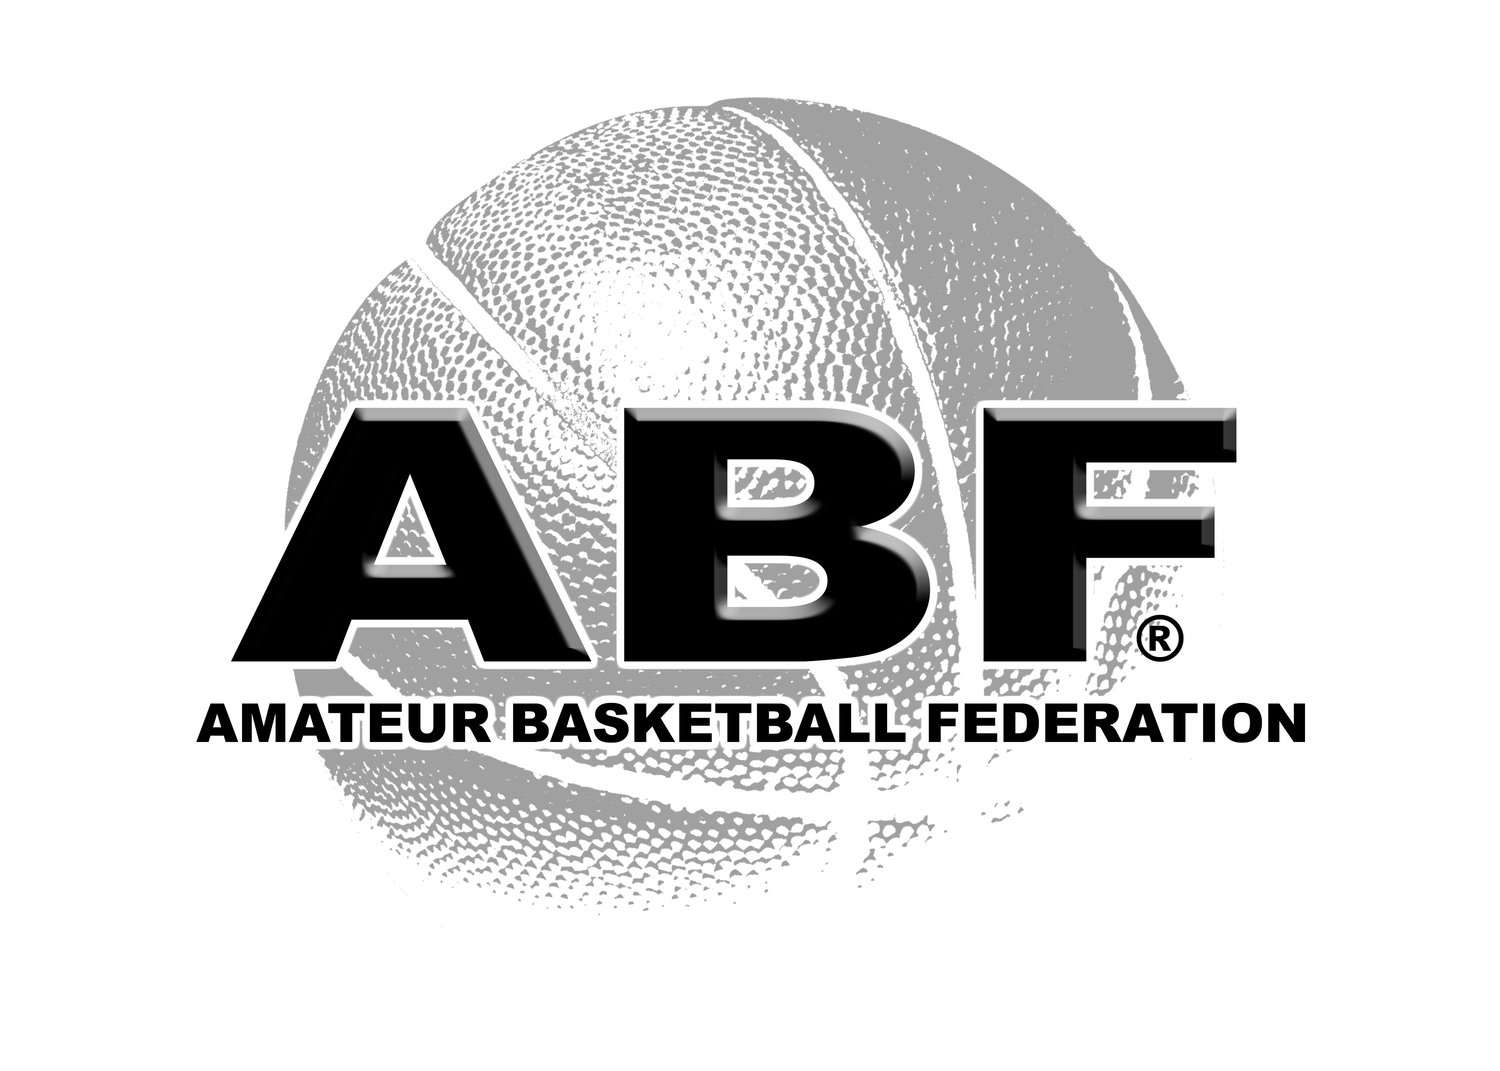 Amateur Basketball Federation